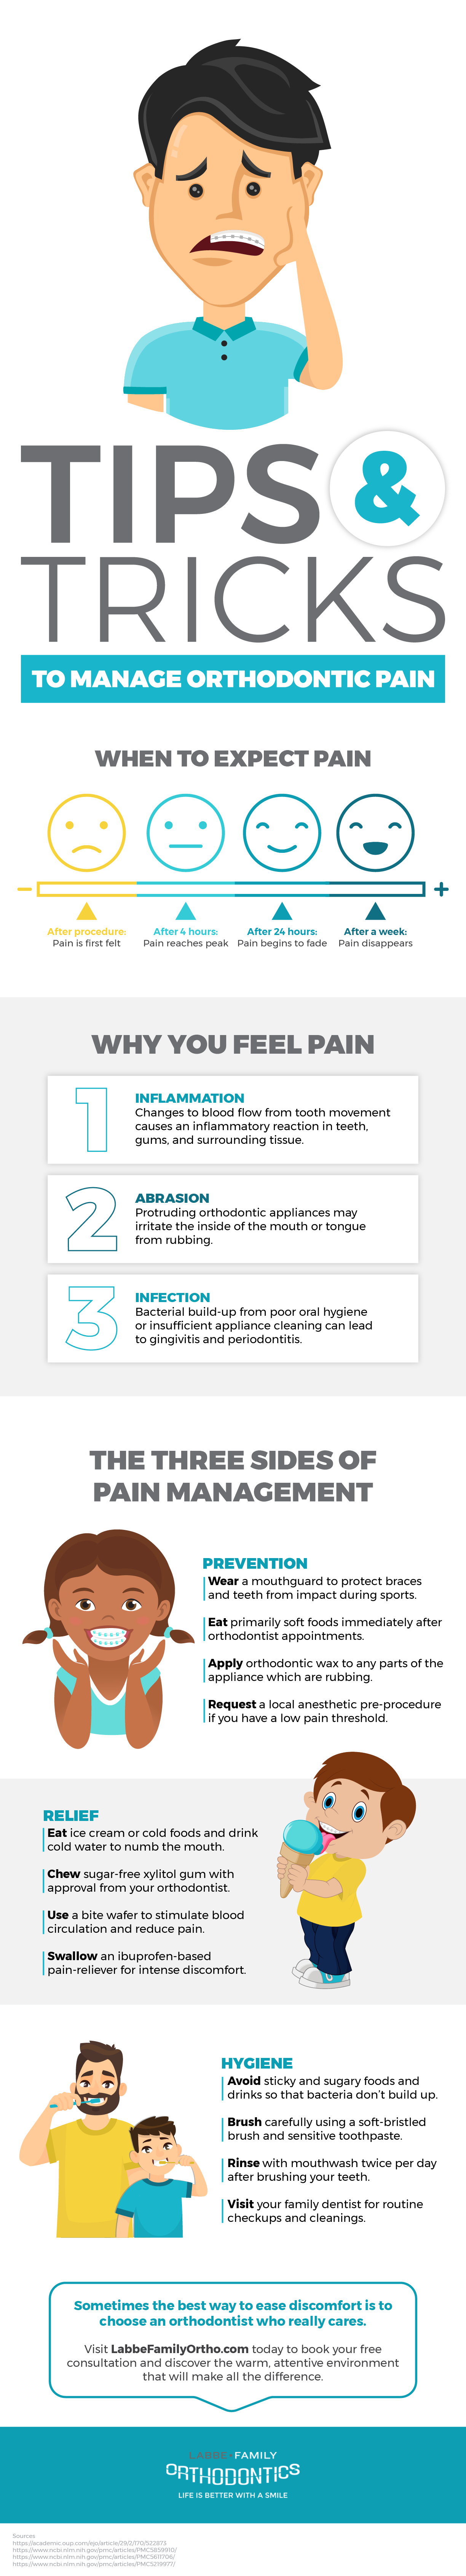 Tips and Tricks to Manage Orthodontic Pain Infographic